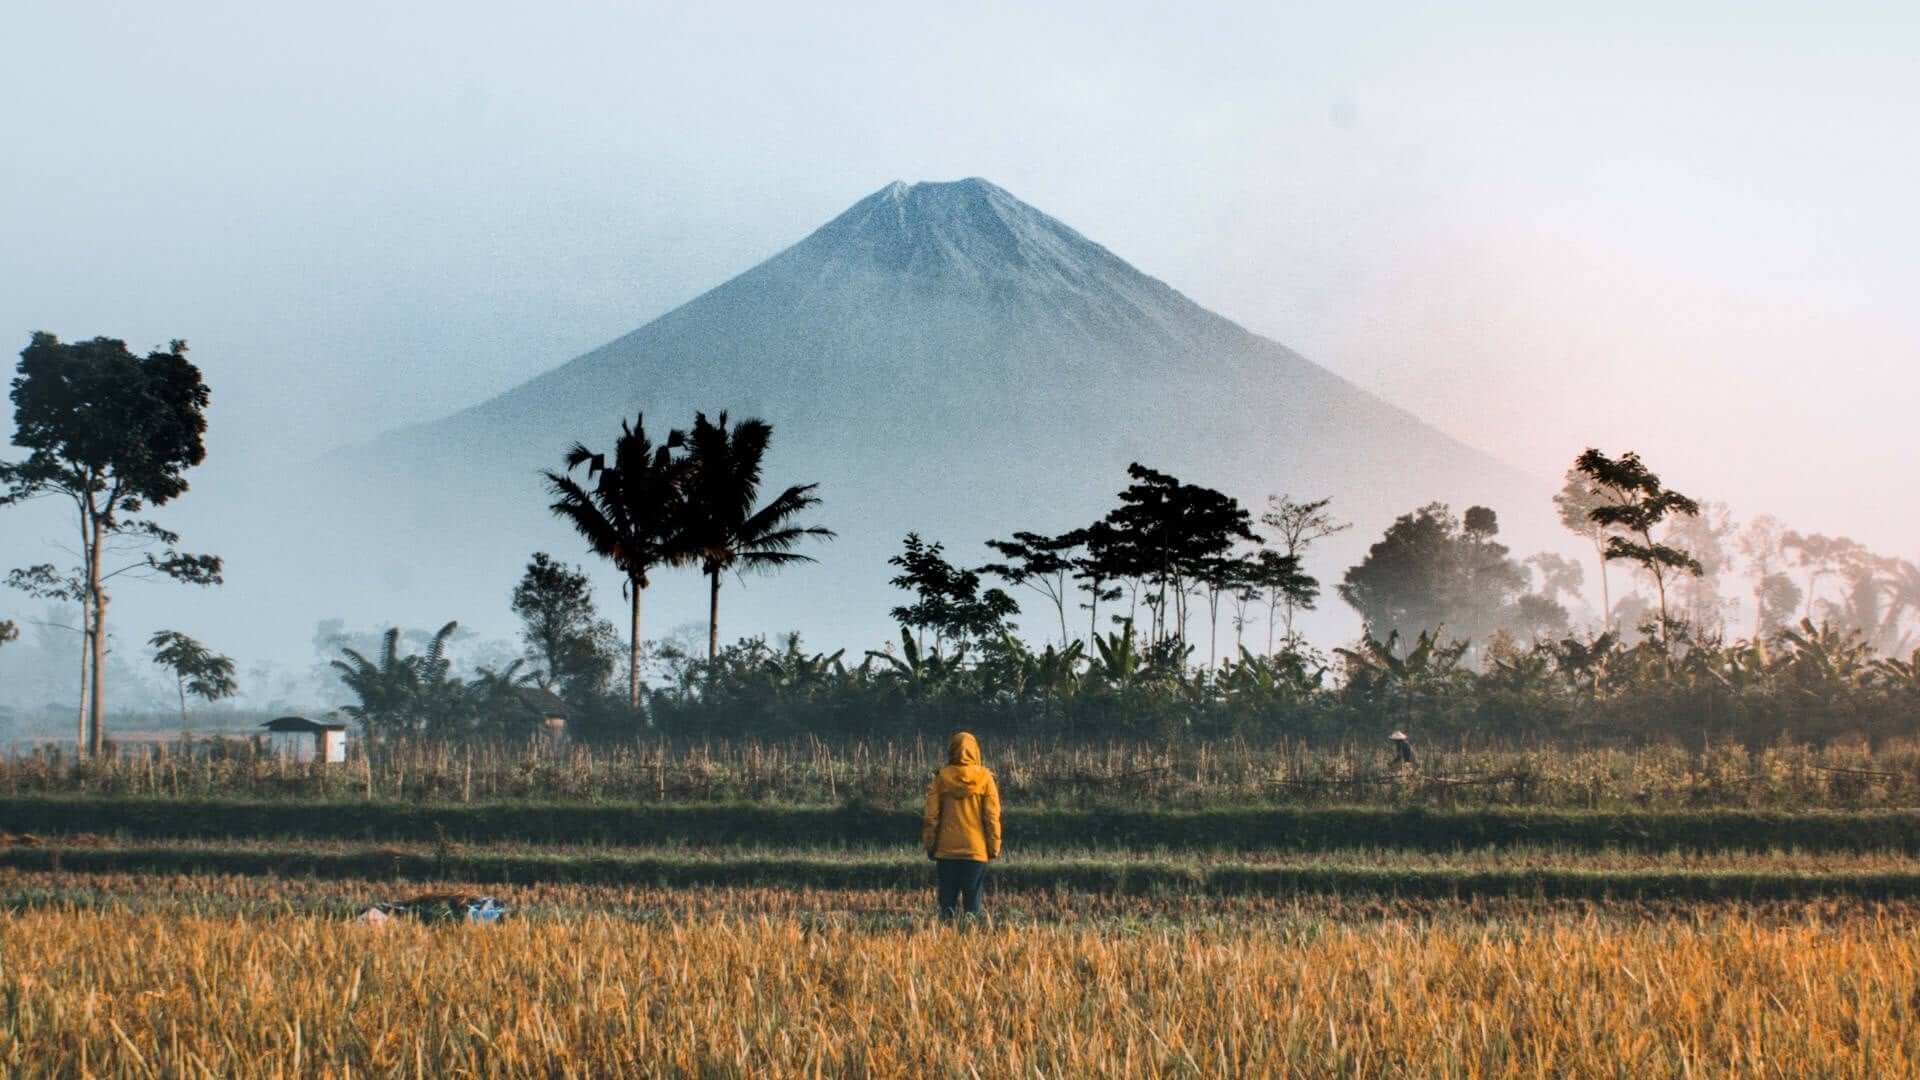 Man standing on a rice field watching a volcano.